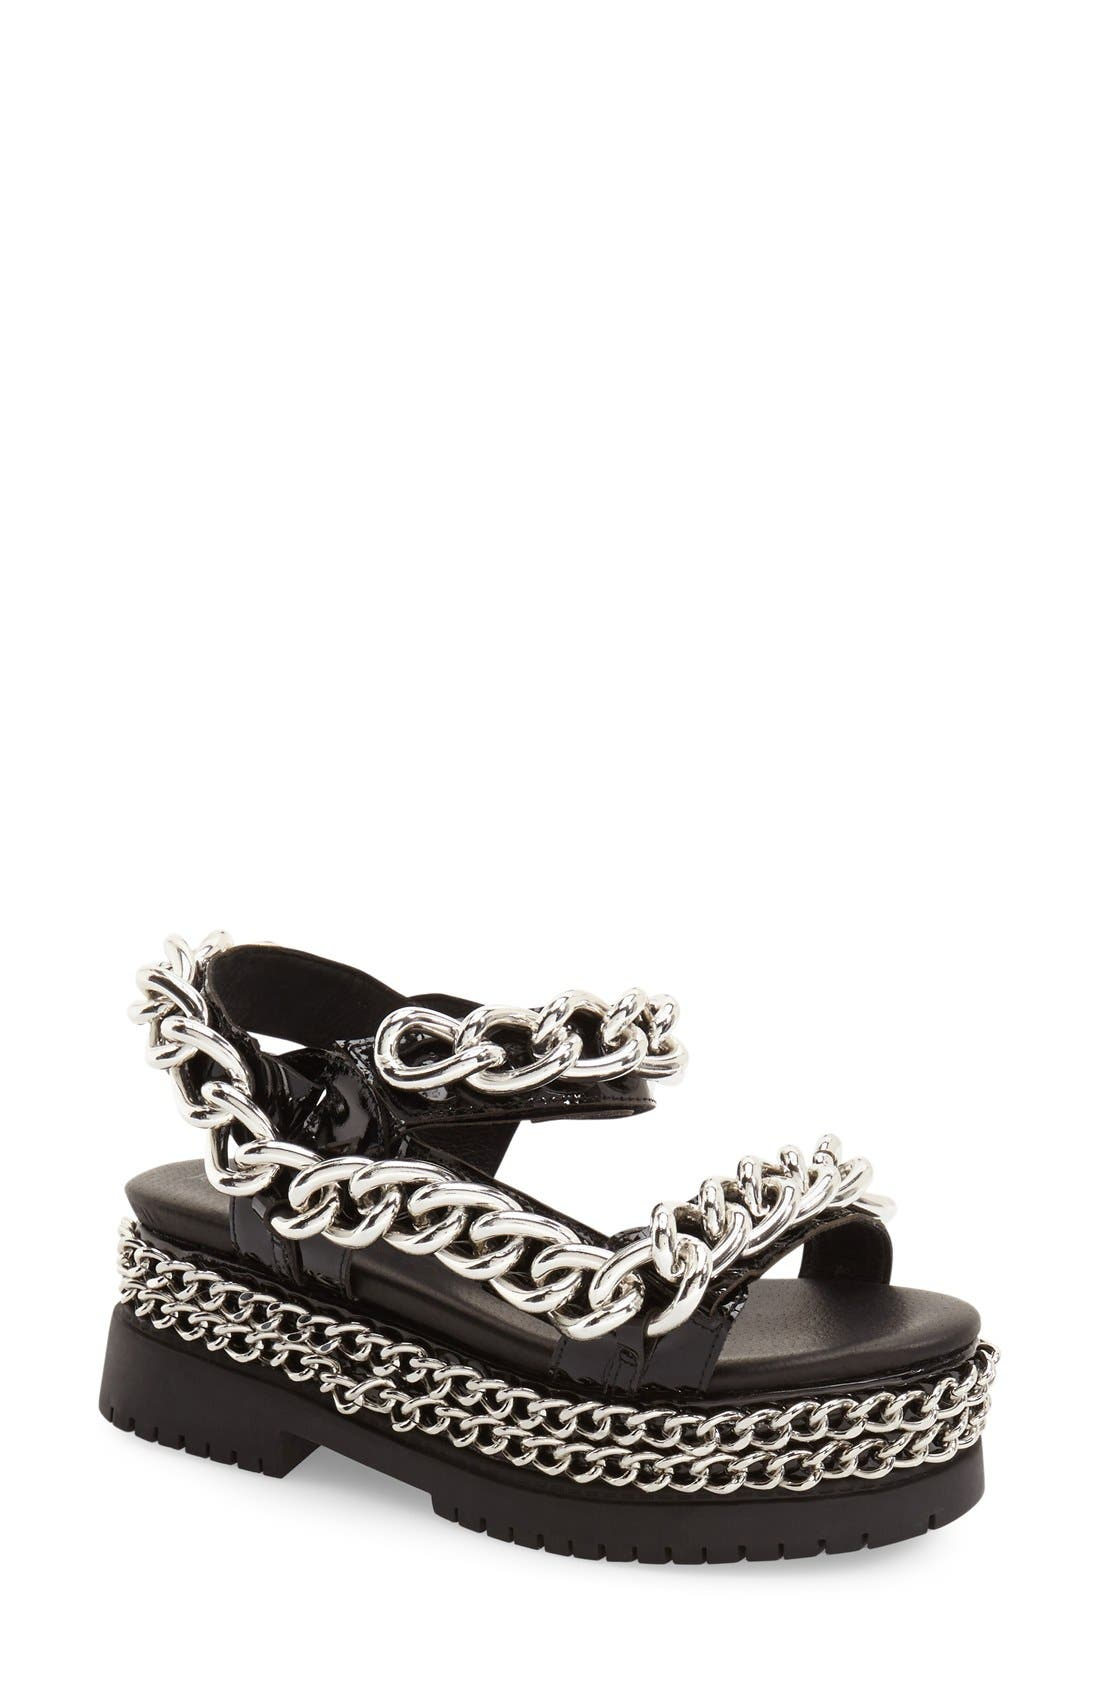 Alternate Image 1 Selected - Jeffrey Campbell 'Mayview' Platform Sandal (Women)